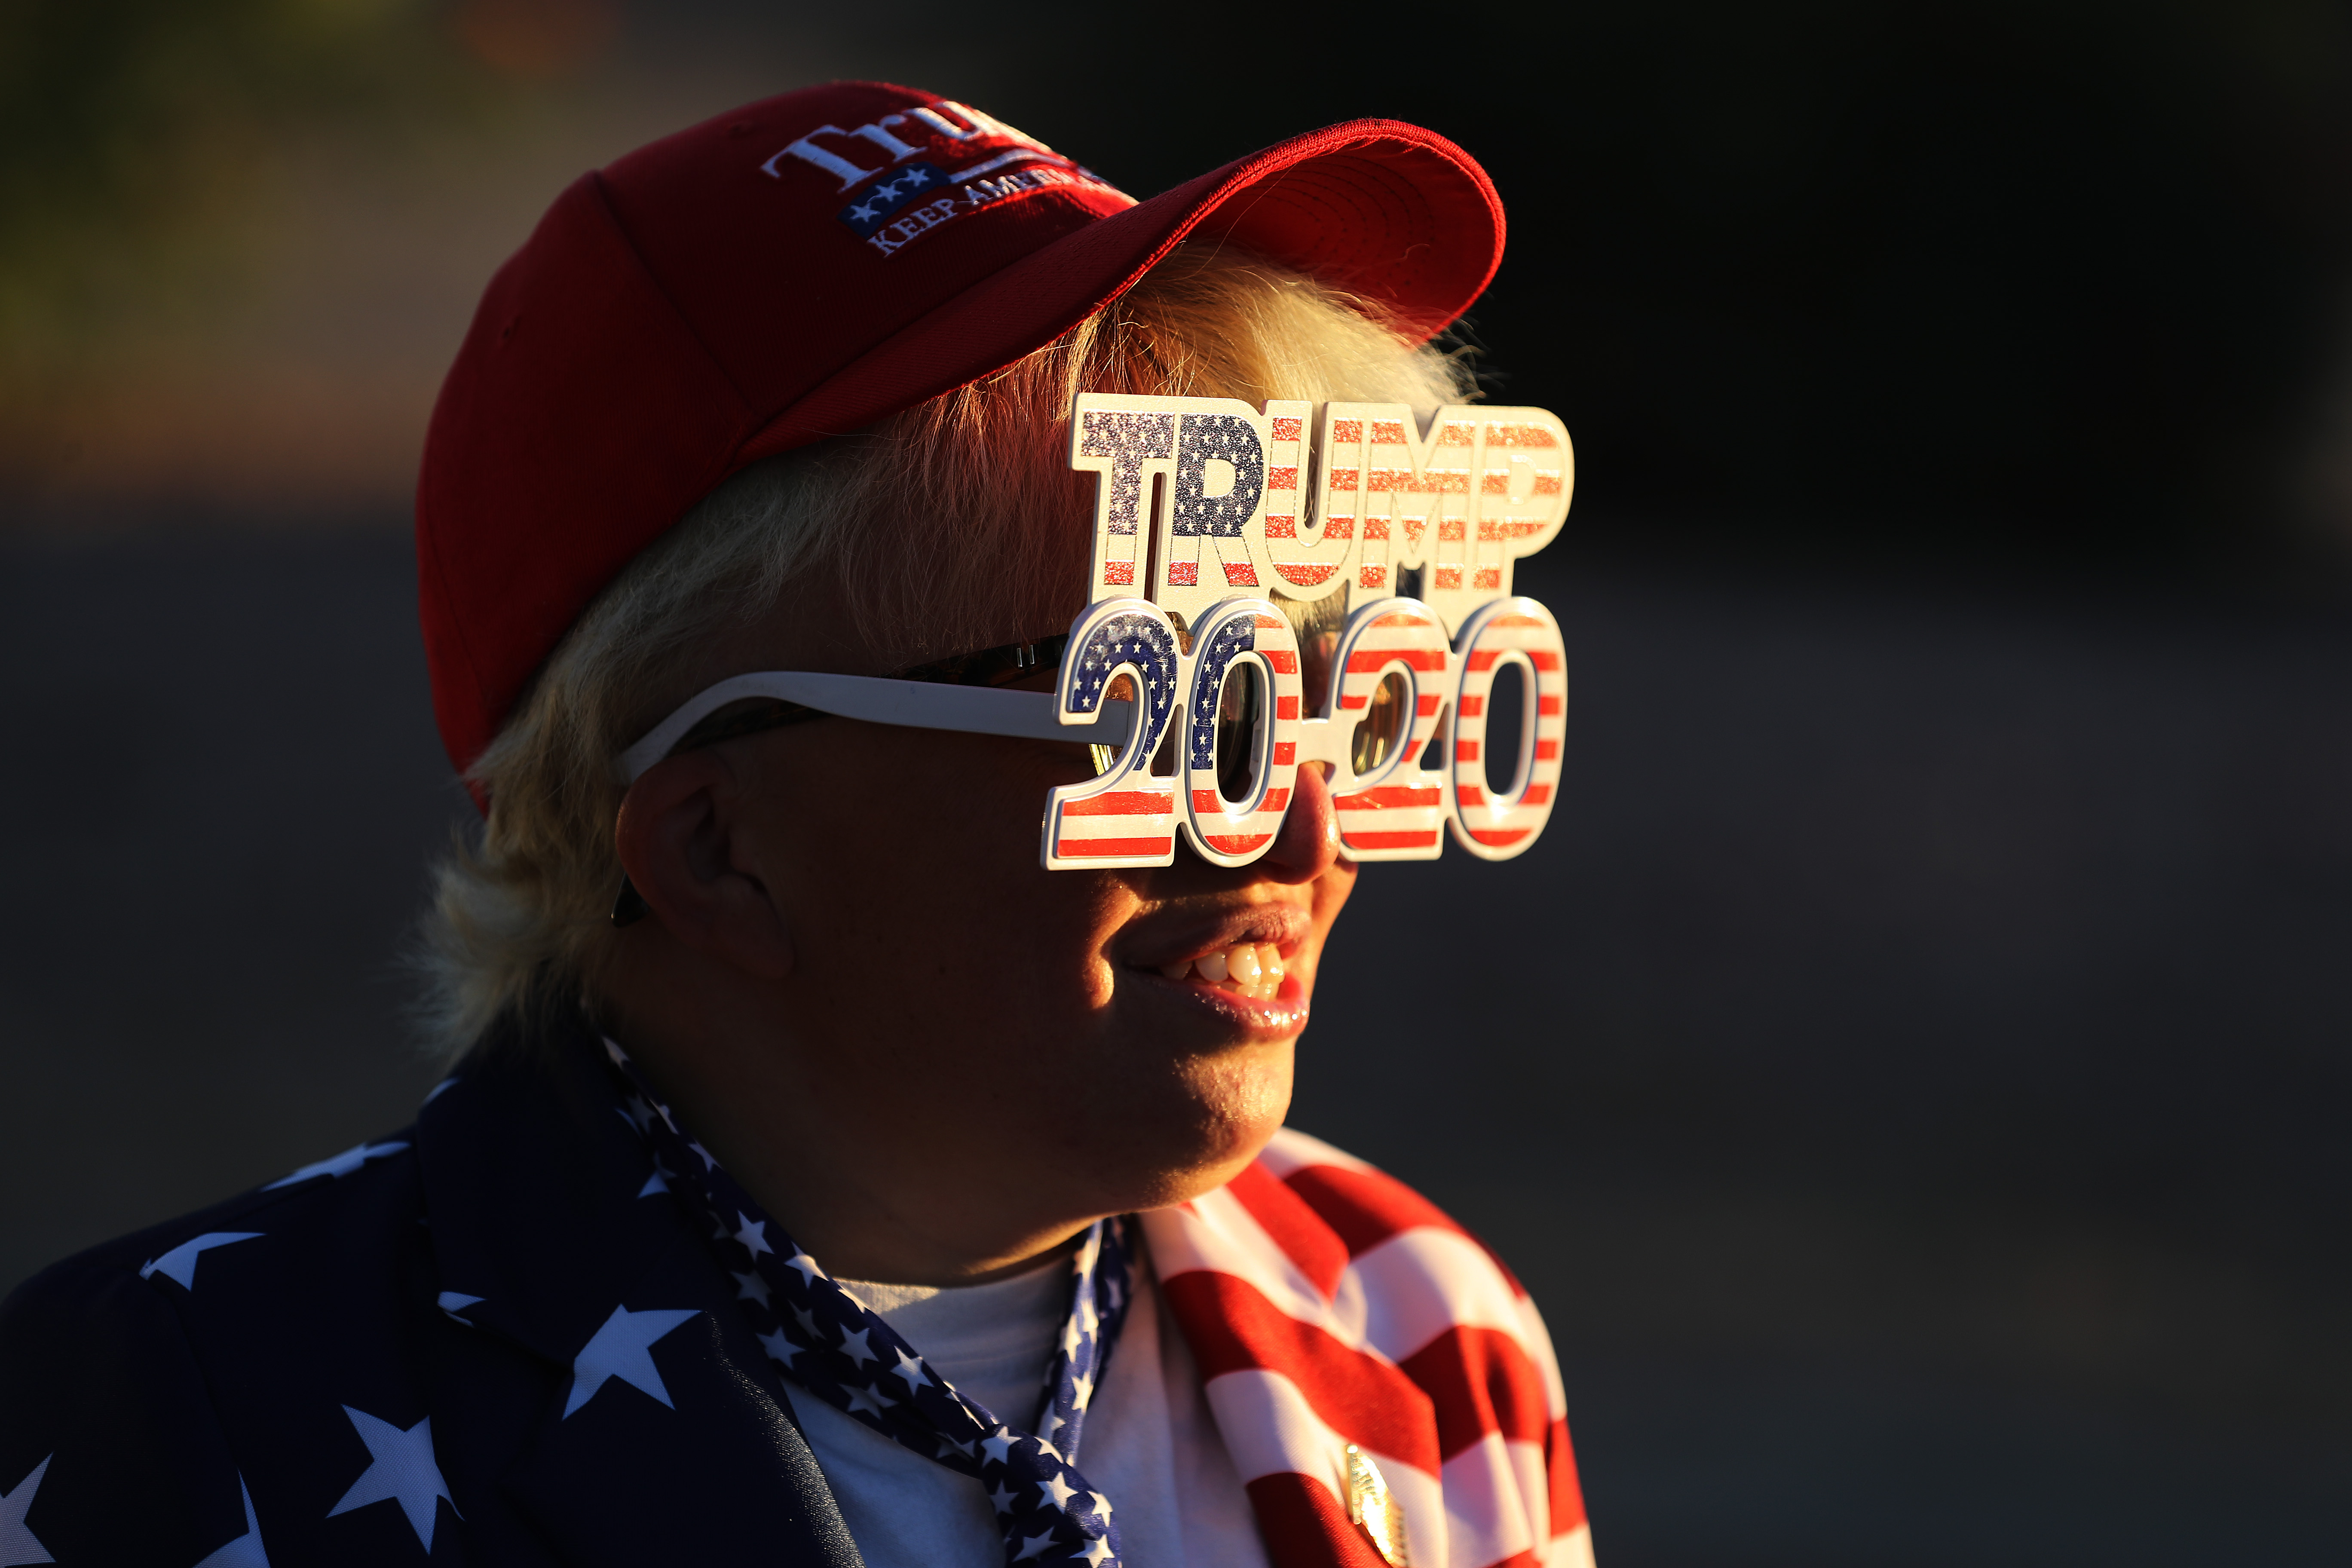 Why are Trump voters more enthusiastic?